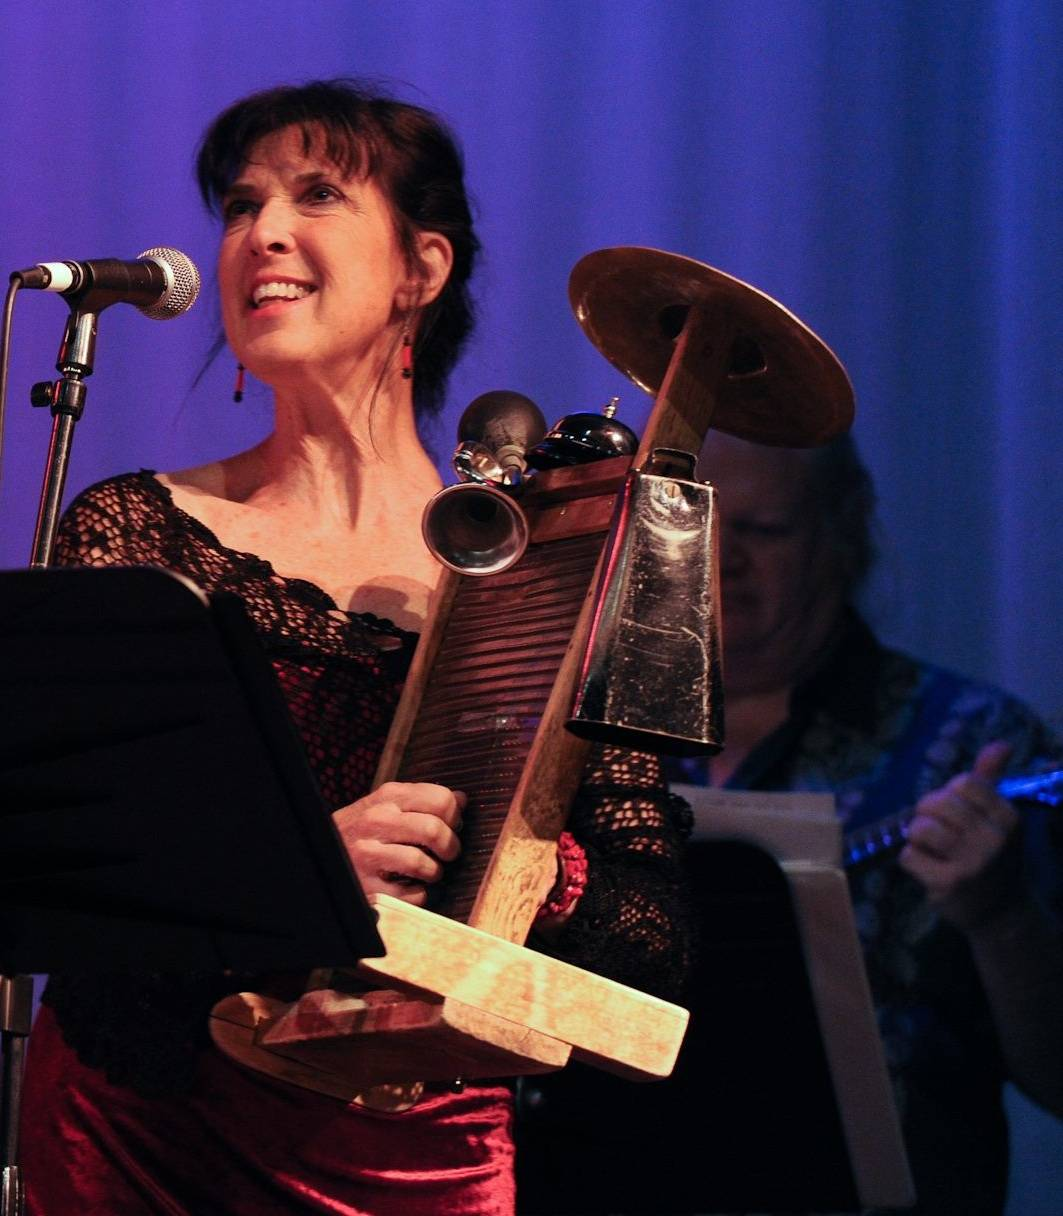 Vocalist/Musician Barbara Silverman will perform on May 28 at Northbrook Community Synagogue's Women's Havurah's culminating dinner